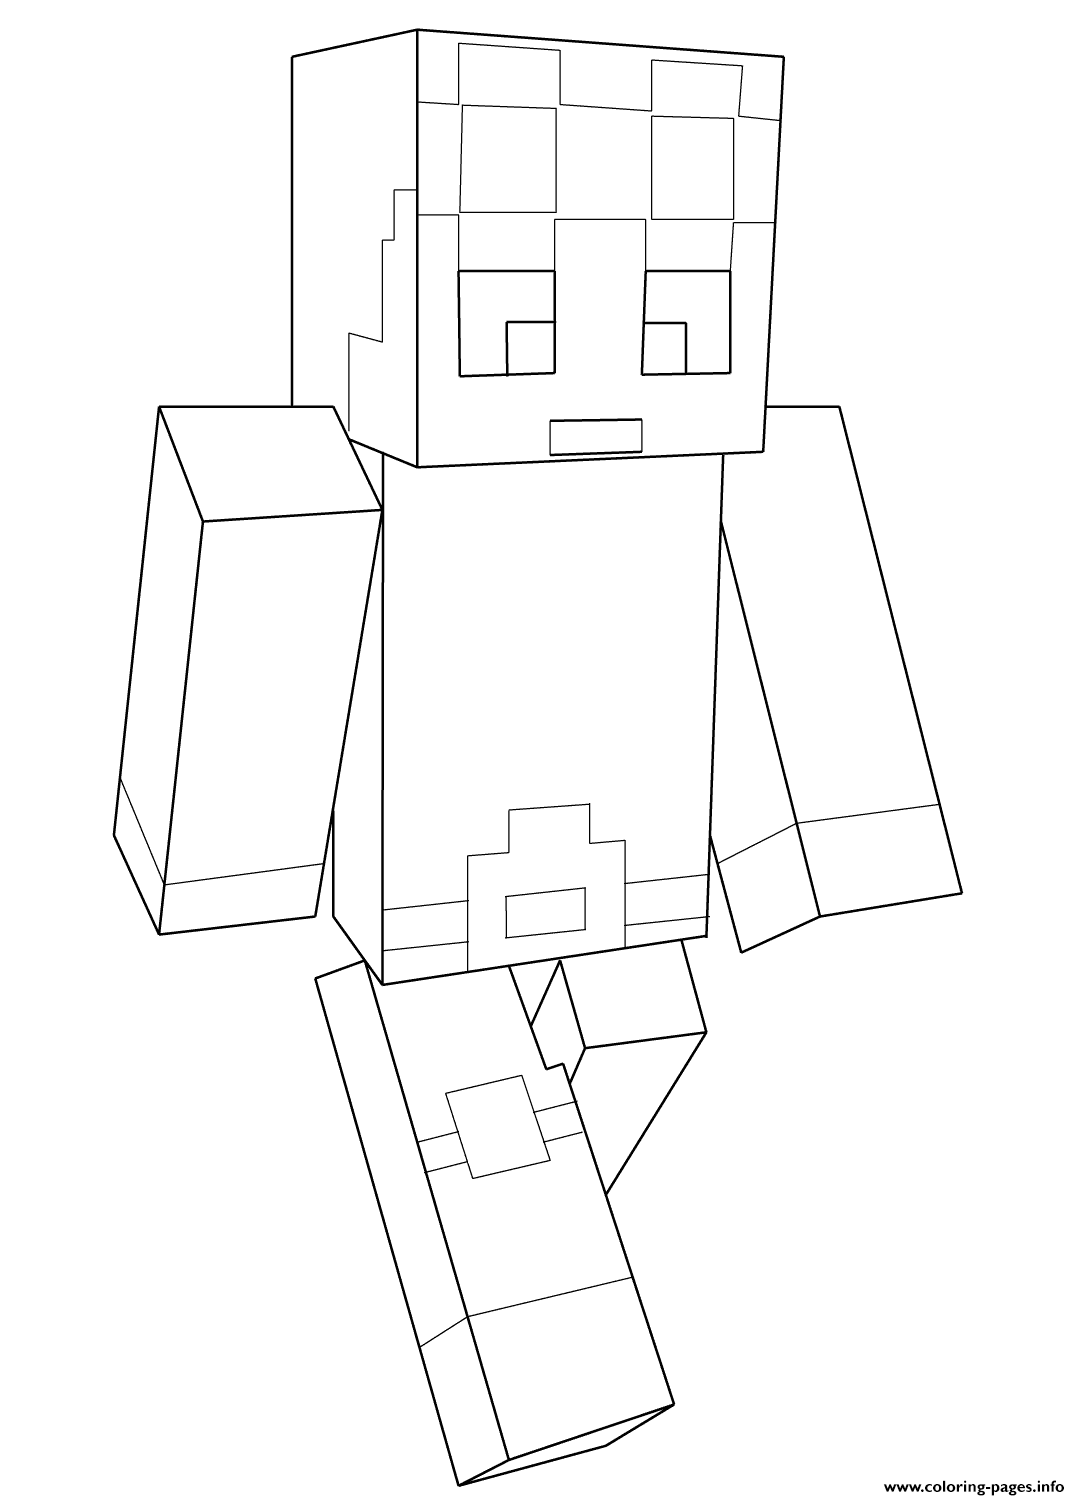 Minecraft Dantdm coloring pages